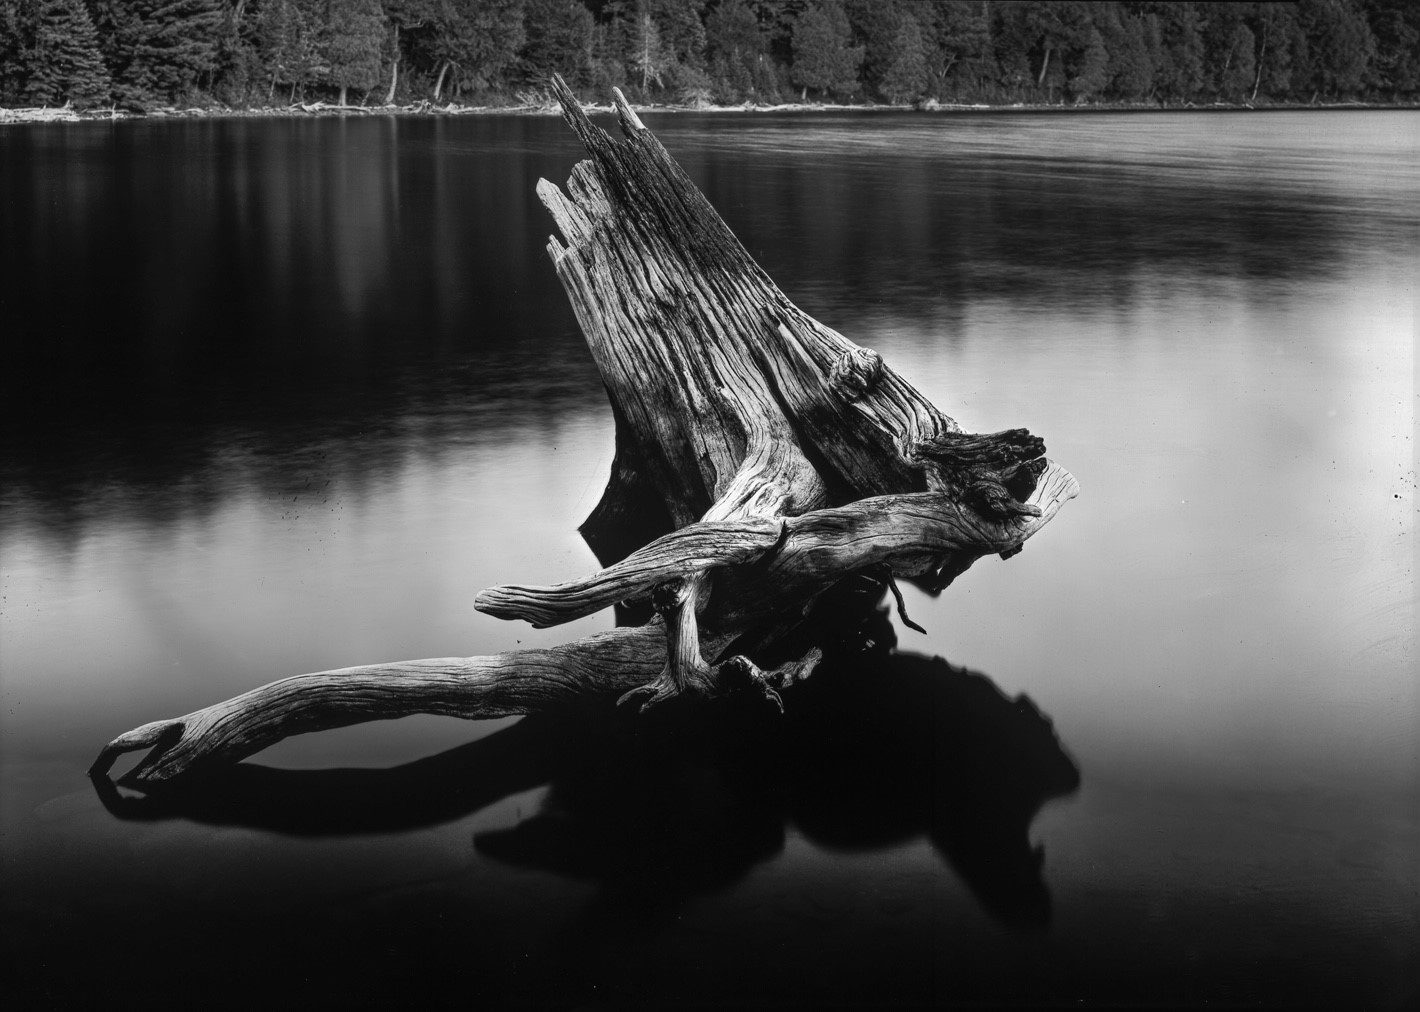 Weathering the Shallows - A 5x7 paper negative shot by Don Kittle on ILFORD Mutigrade paper